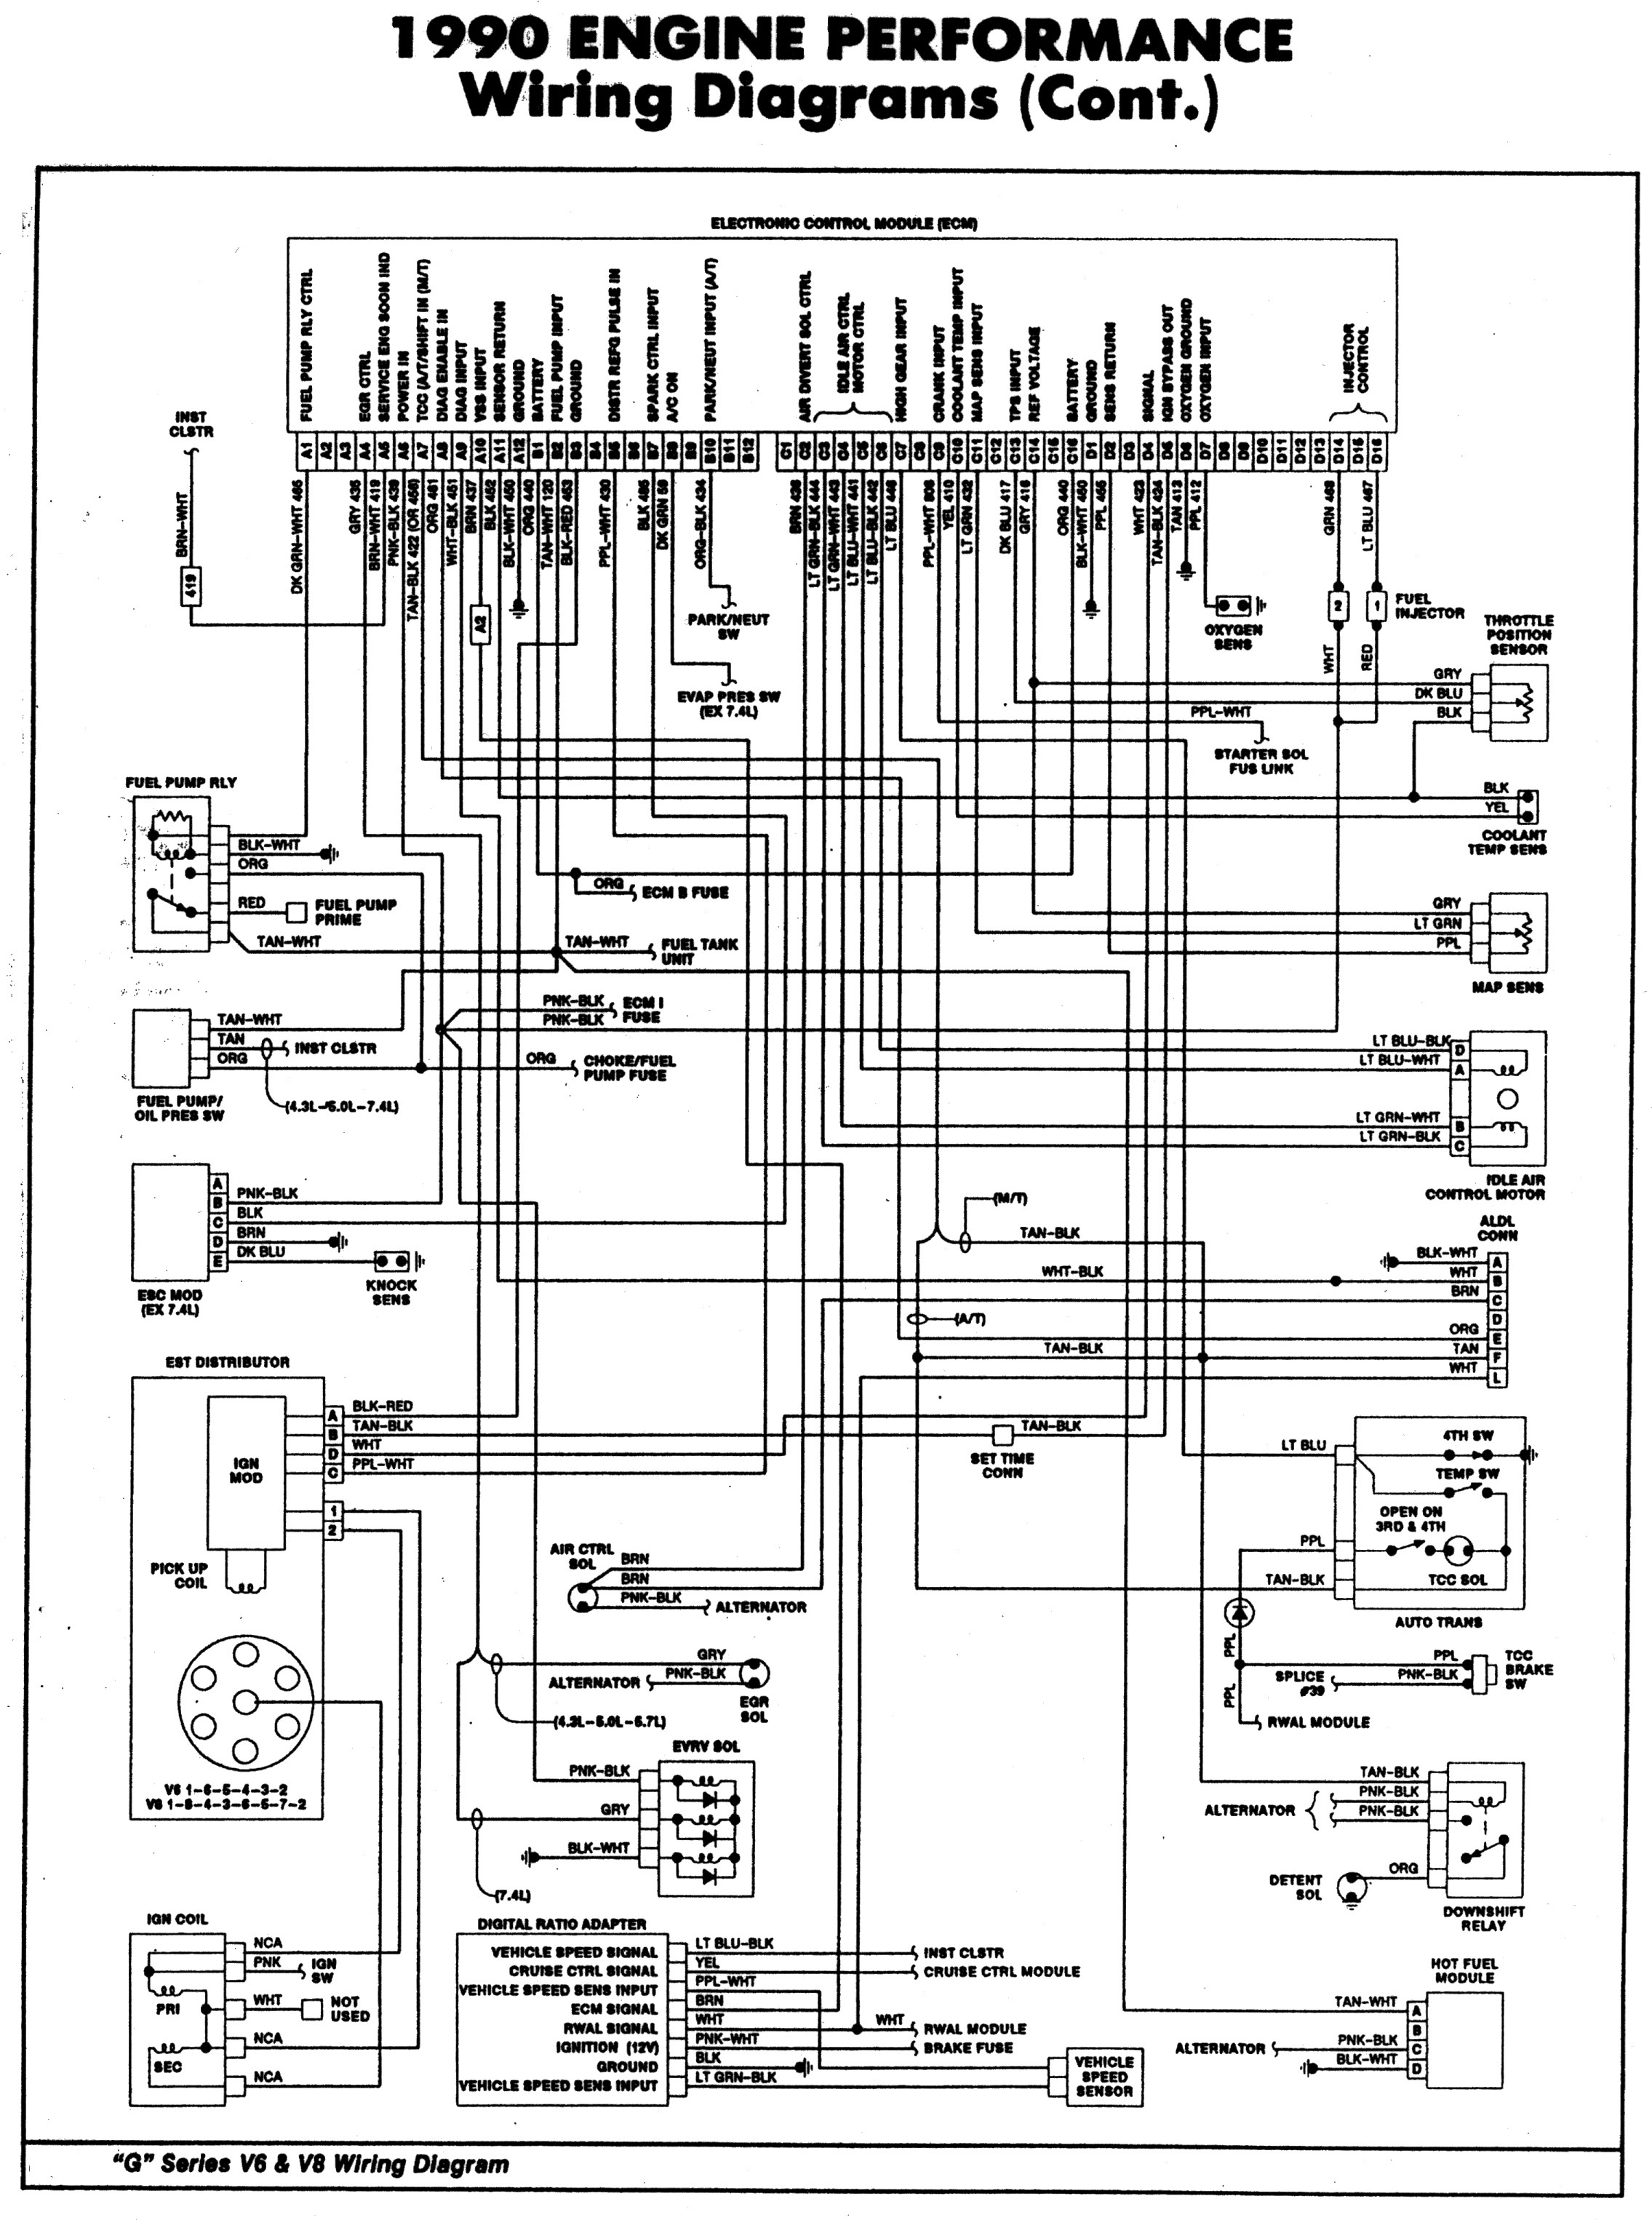 medium resolution of chevy tpi wiring diagram free download schematic wiring diagram 92 camaro wiring diagram free download schematic